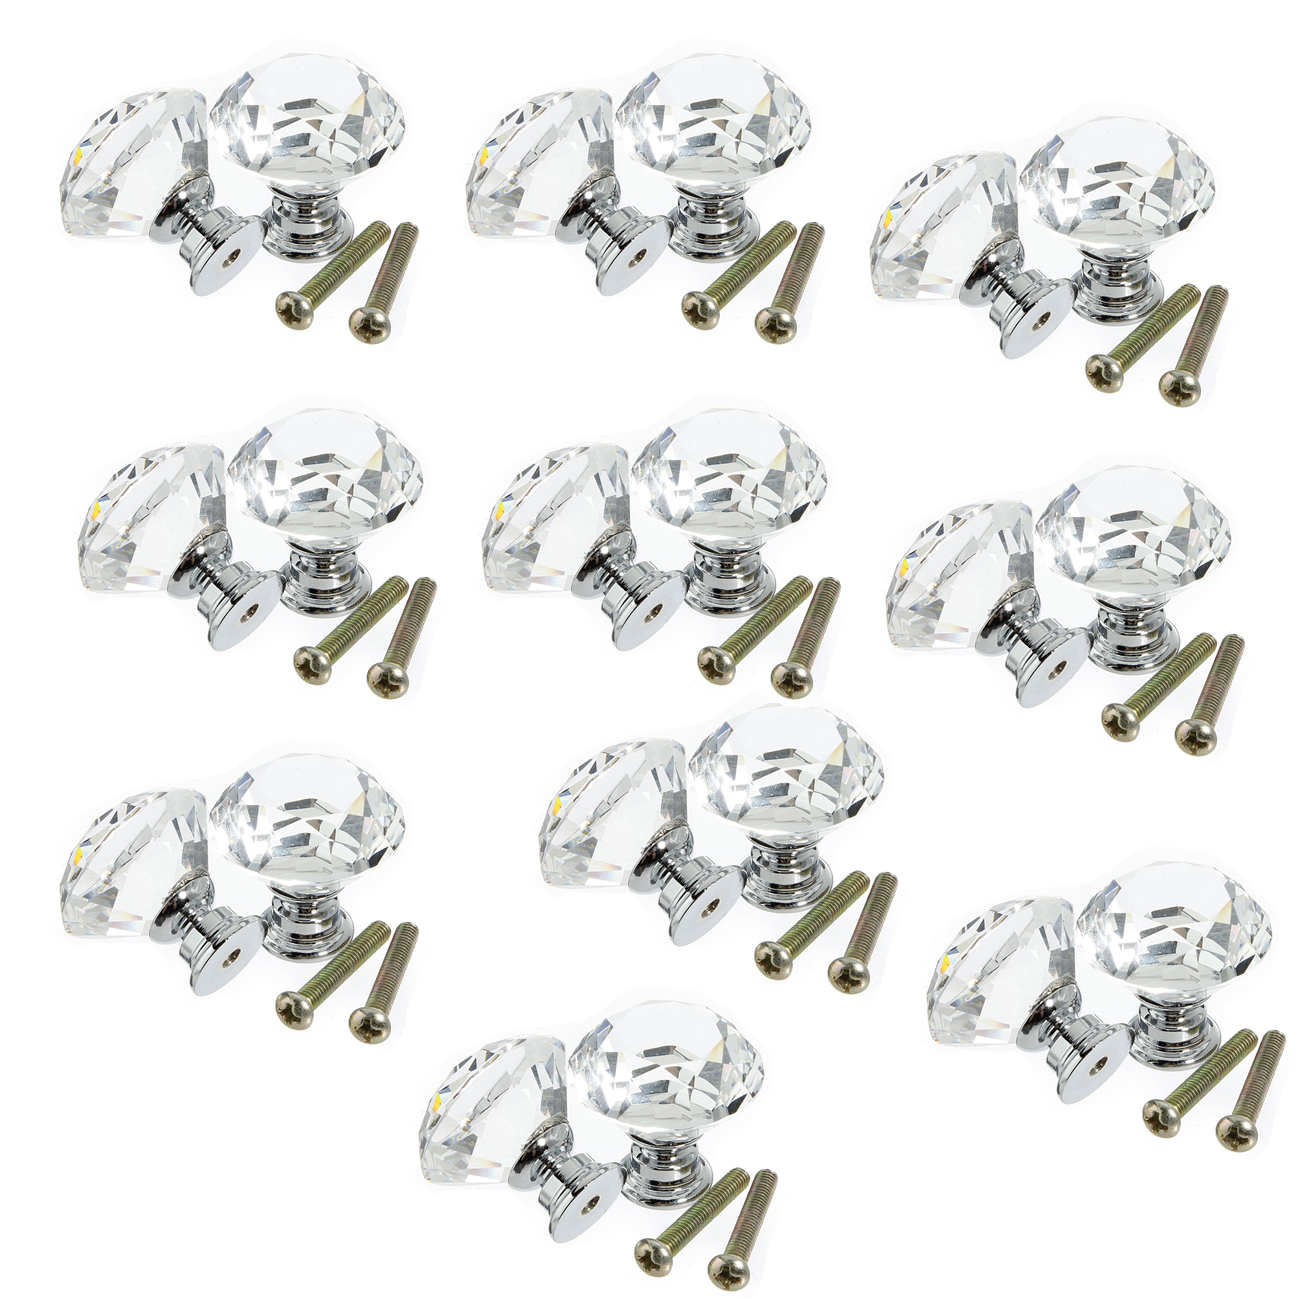 THGS 10pcs 30mm Diamond Crystal Glass Door Drawer Cabinet Furniture Handle Knob Screw free shipping hot sale 10pcs k9 crystal handles flash diamond archaize shiny drawer twinkle door knob bathroom handle crystal